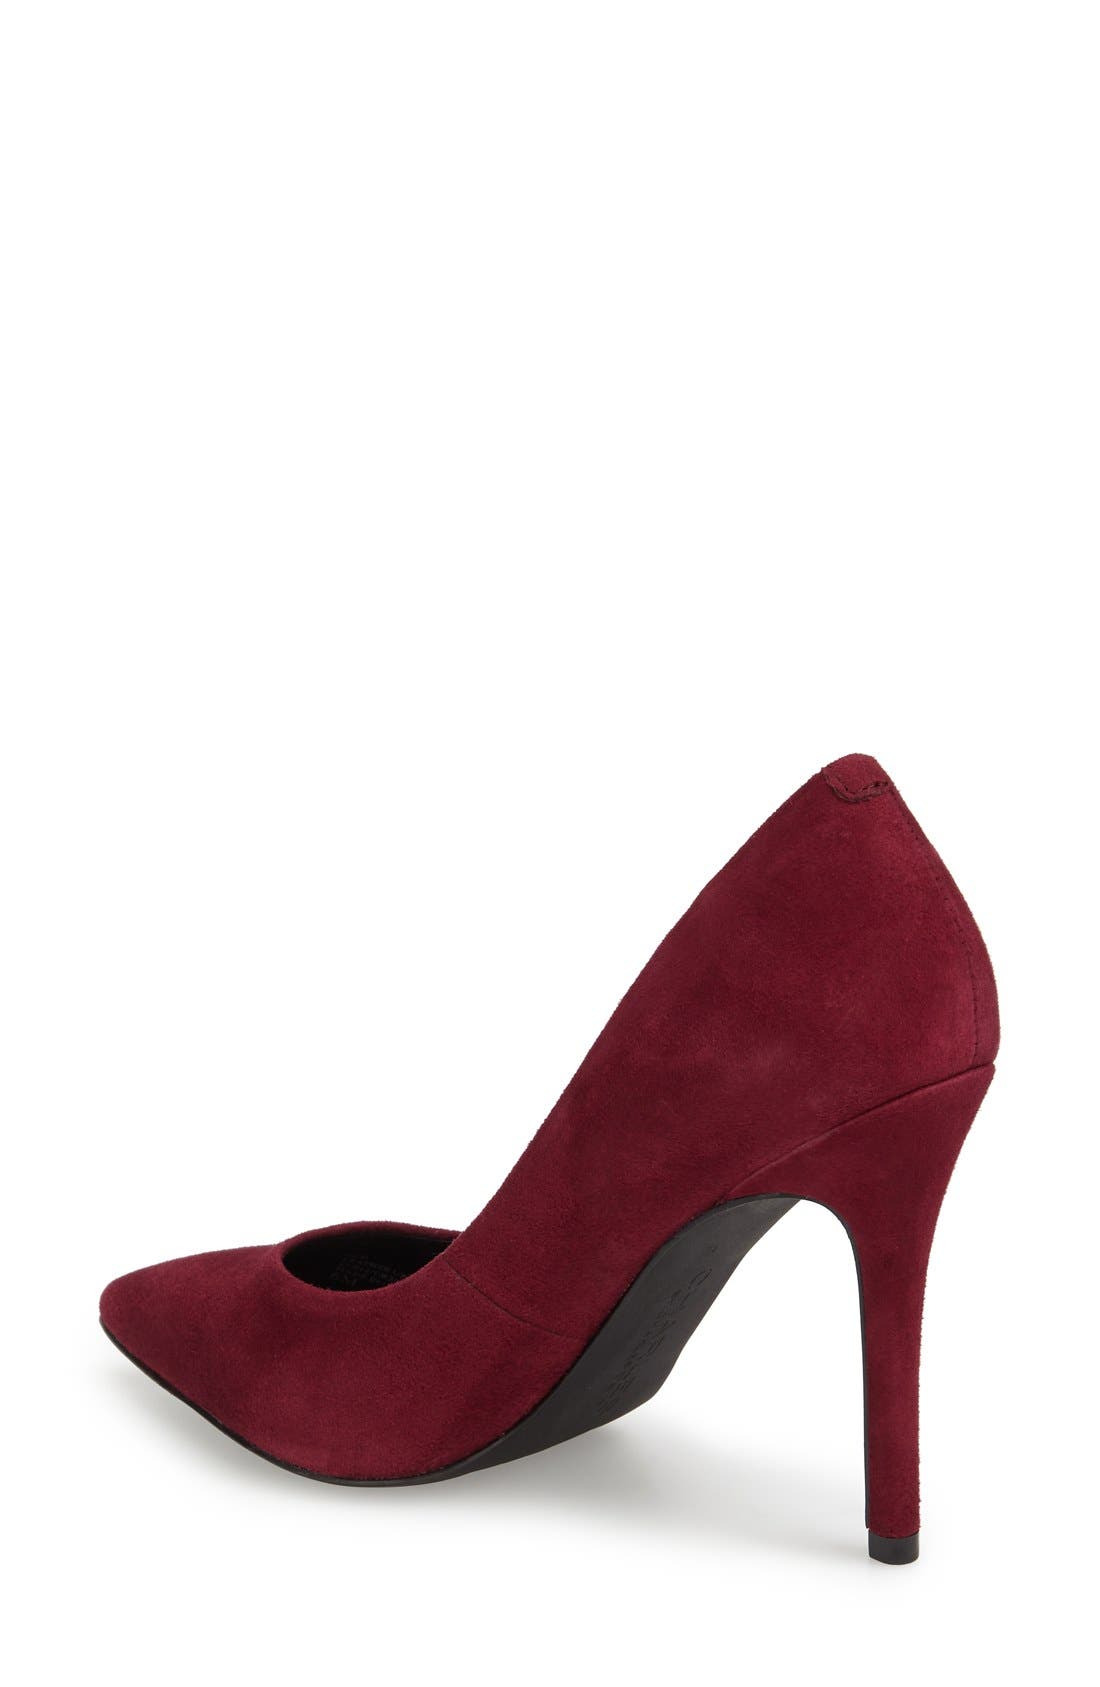 'Pact' Pump,                             Alternate thumbnail 2, color,                             Merlot Suede